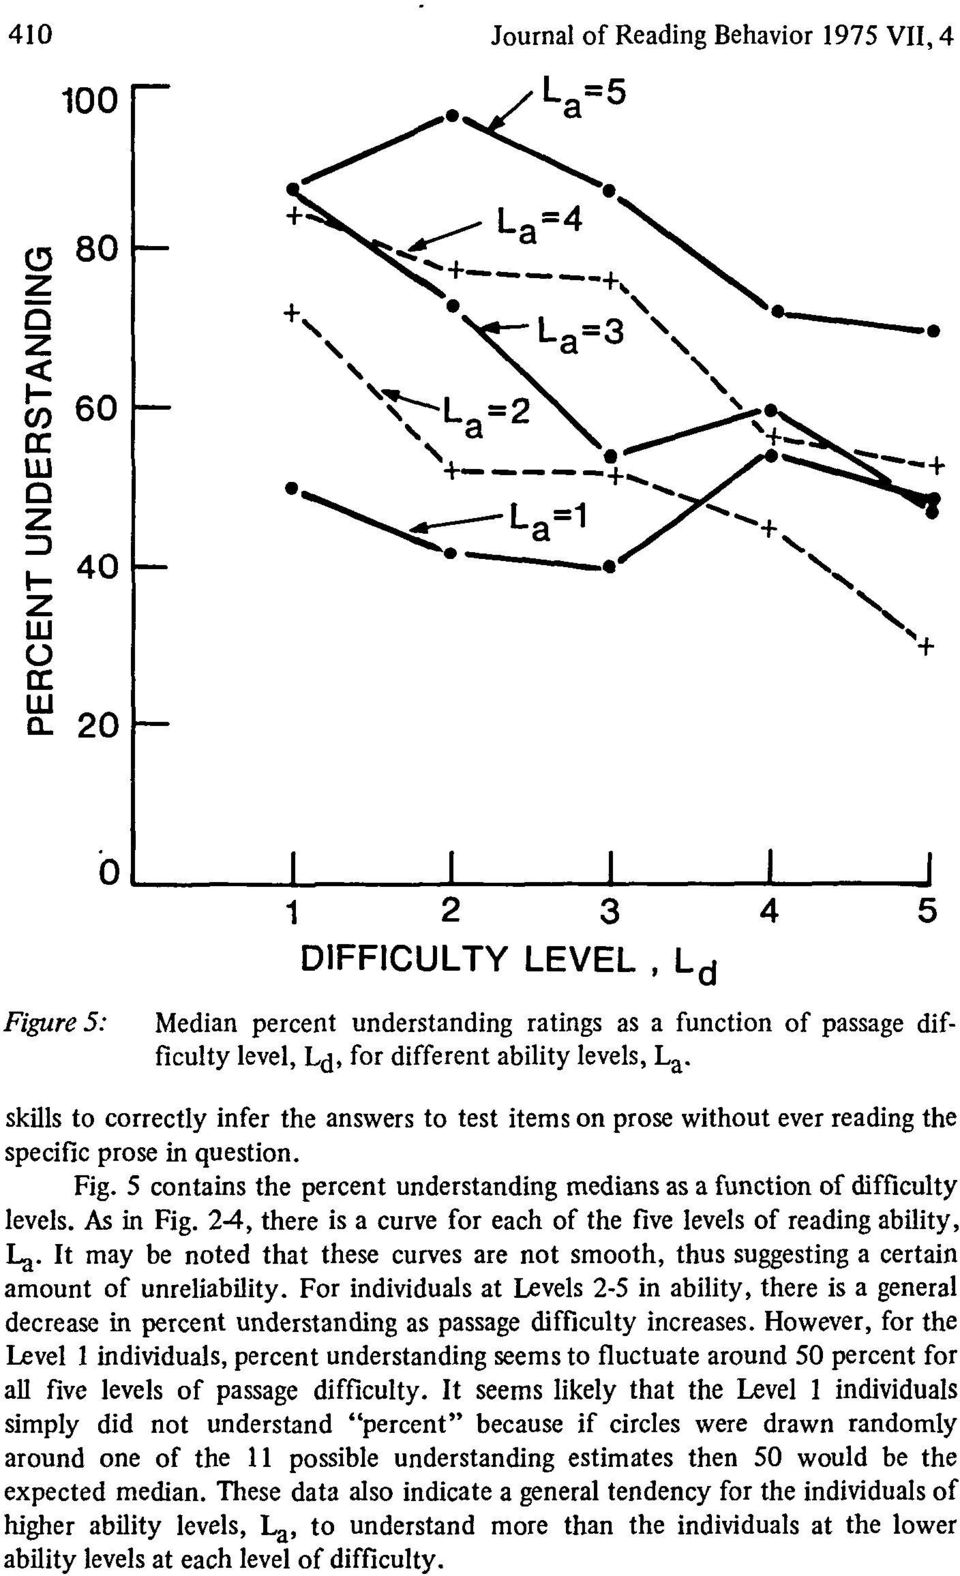 5 contains the percent understanding medians as a function of difficulty levels. As in Fig. -, there is a curve for each of the five levels of reading ability, I^.